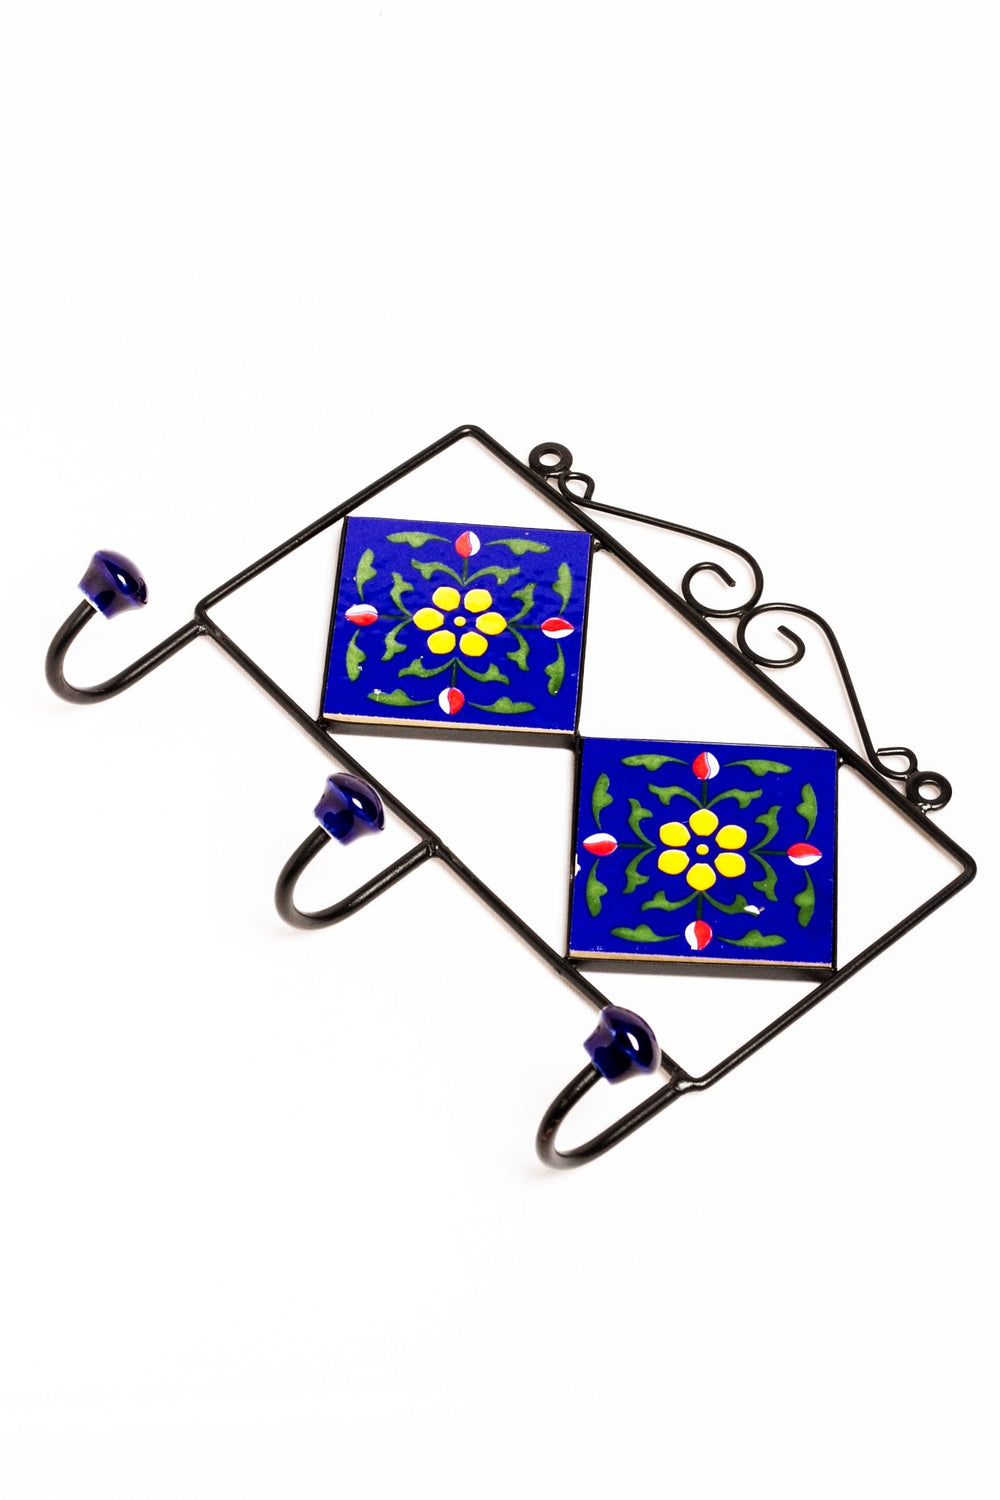 2 tiled 3 hook frame blue with yellow and red floral motif